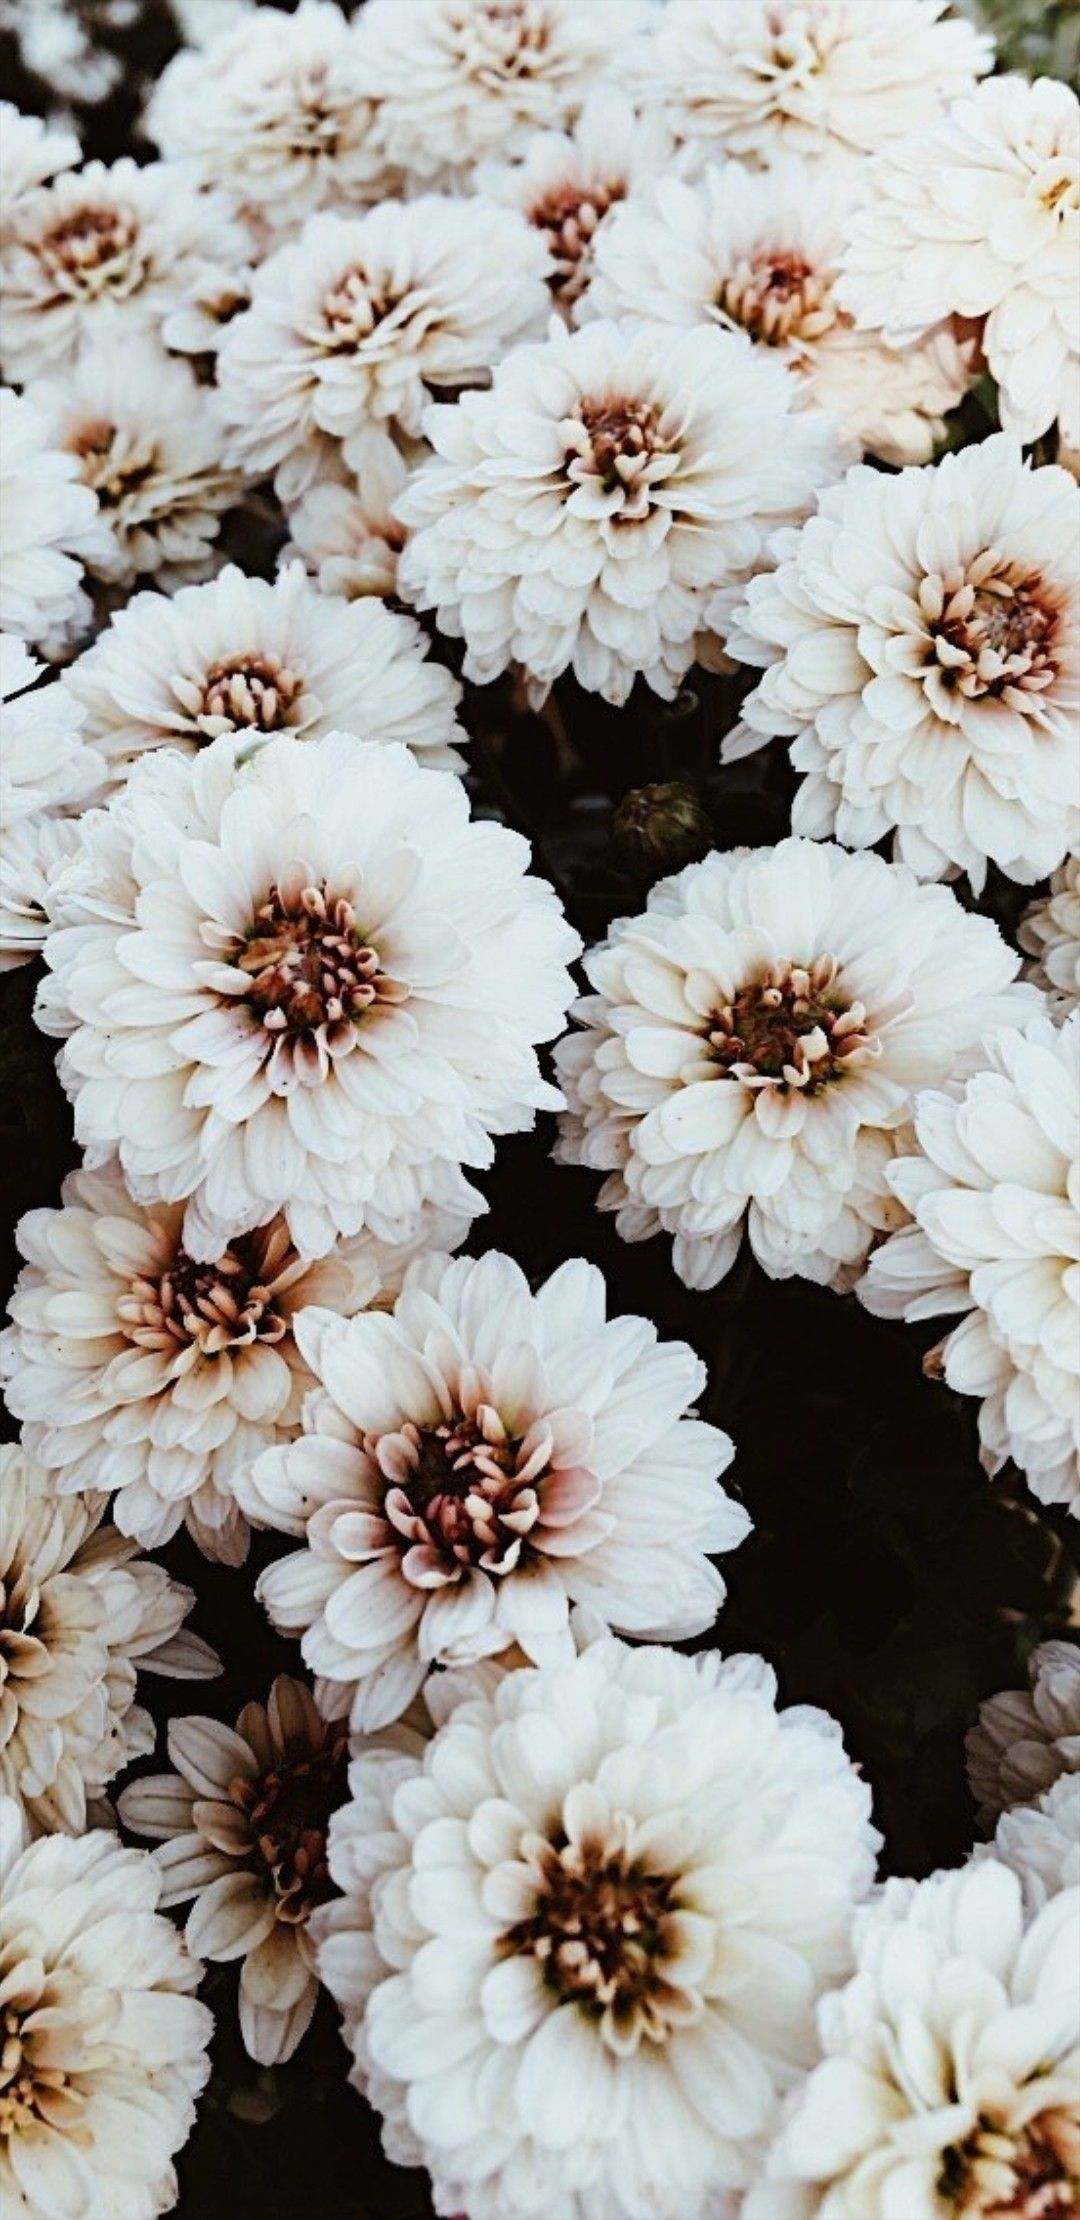 Pinterest Xokathrynnicole Flower Phone Wallpaper Iphone